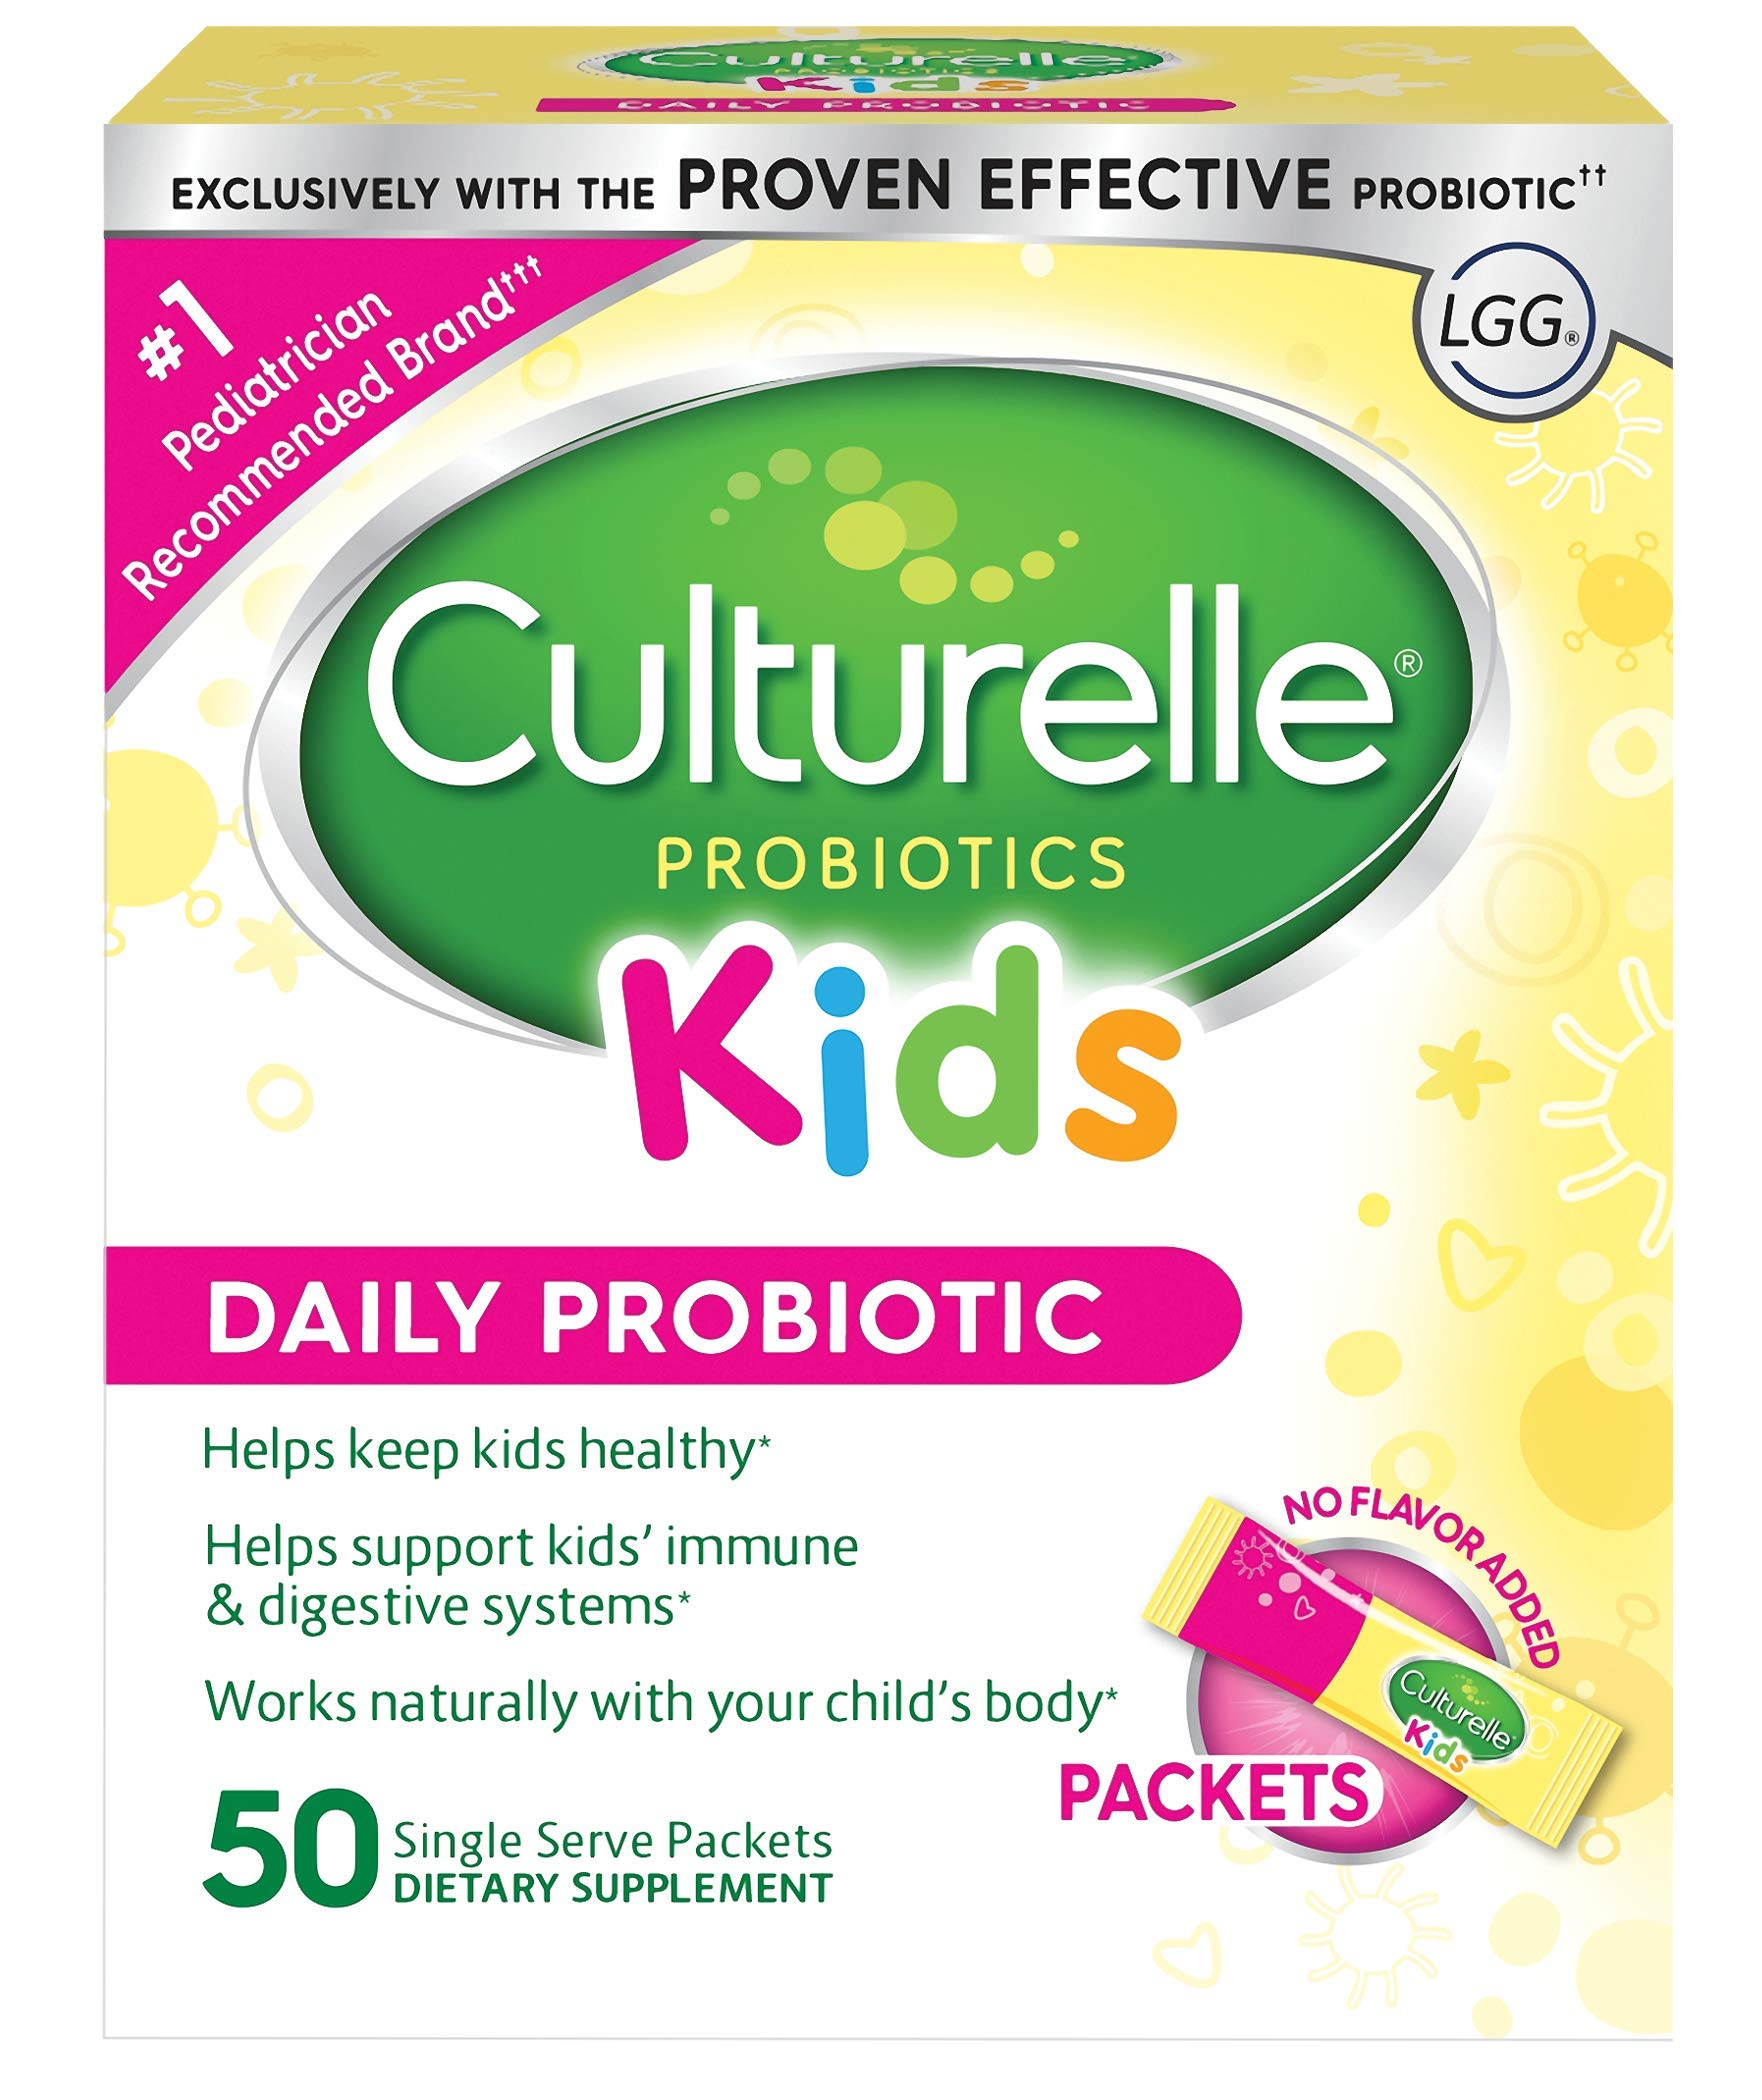 Culturelle Kids Daily Probiotic Packets Dietary Supplement | Helps Support a Healthy Immune & Digestive System | Works Naturally with Your Child's Body | 50 Single Packets by Culturelle